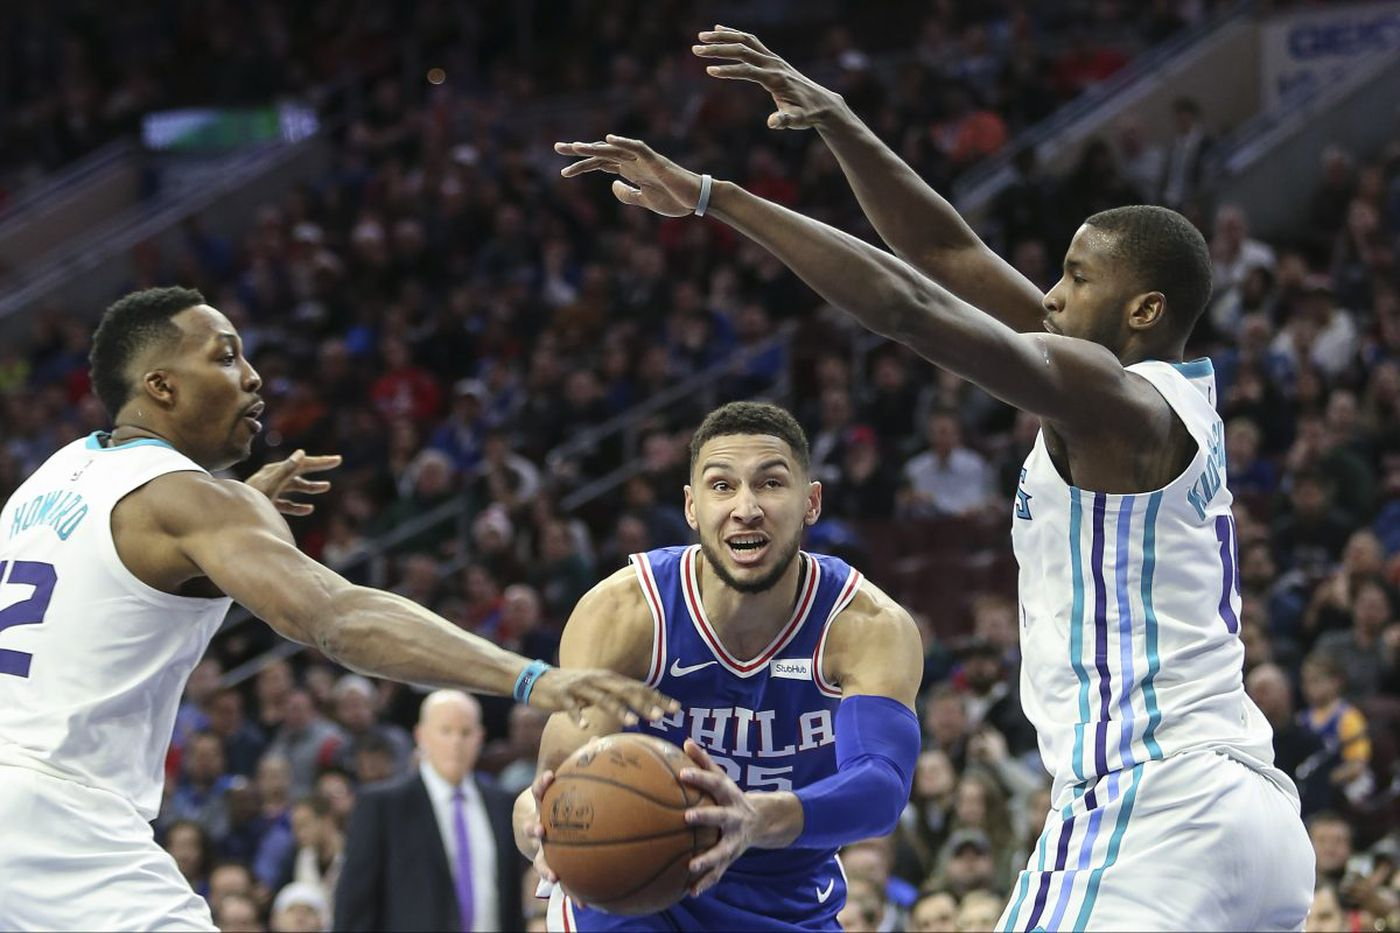 Sixers-Hornets observations, 'best' and 'worst': Another Ben Simmons triple-double, Dwight Howard's disappointment